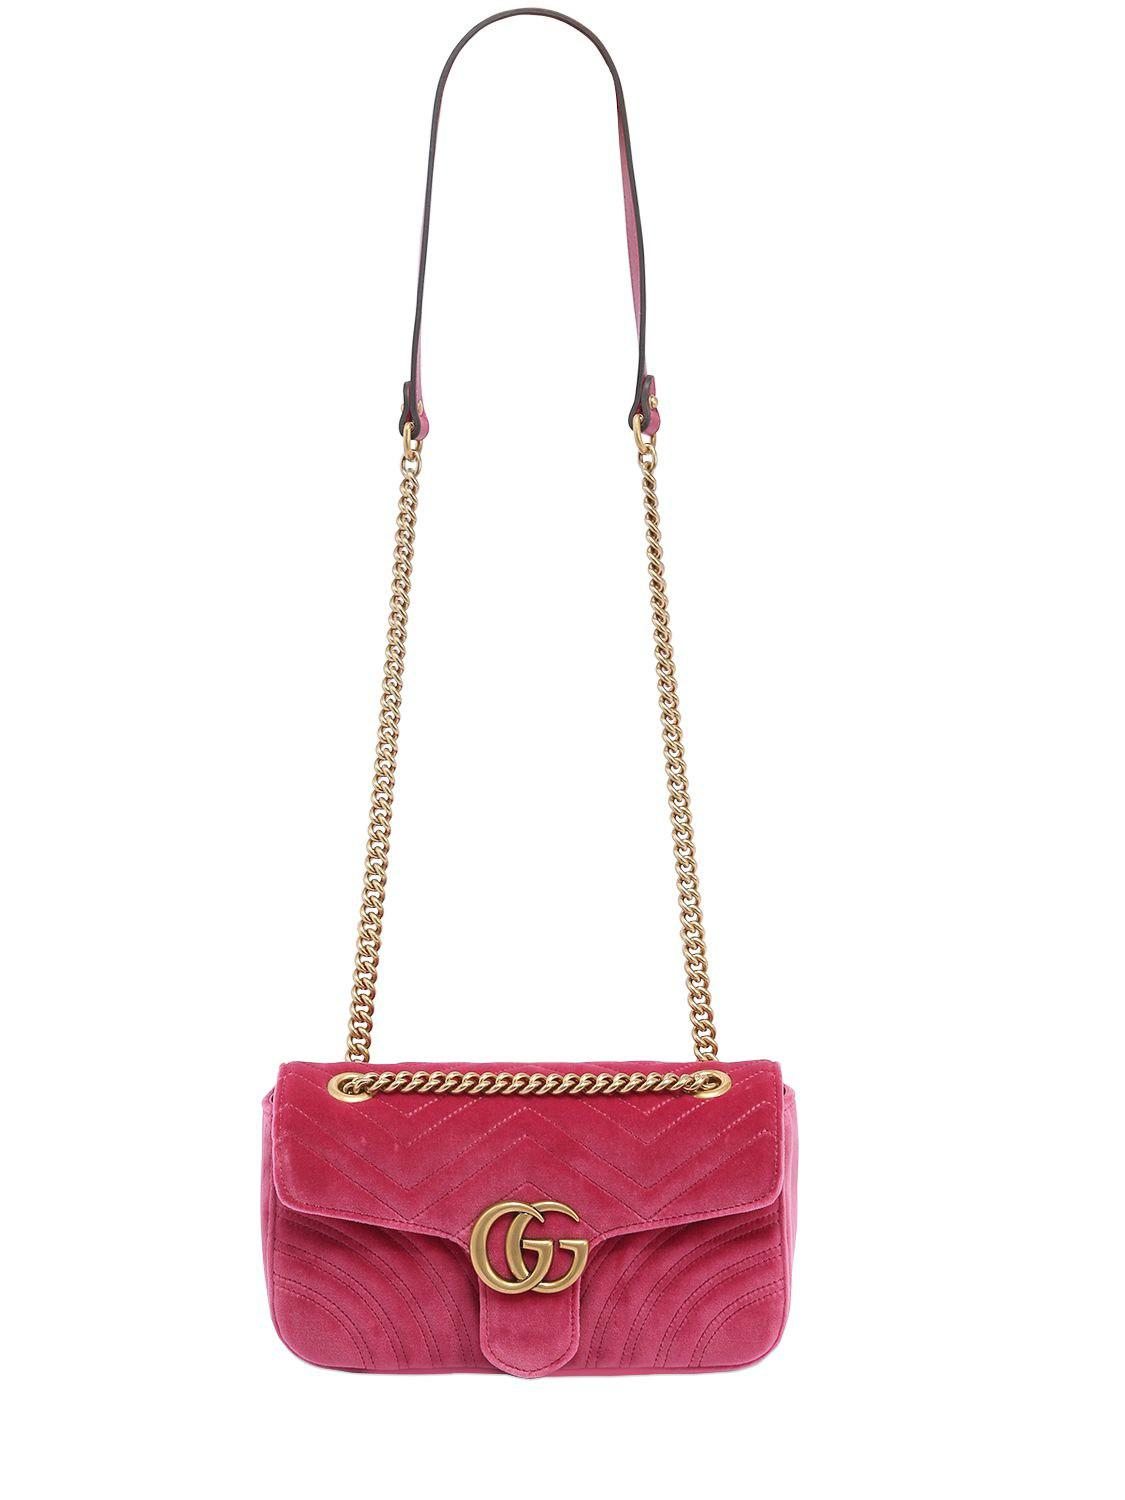 82ee477d8b5 Gucci Small Gg Marmont 2.0 Velvet Shoulder Bag in Pink - Save 21% - Lyst